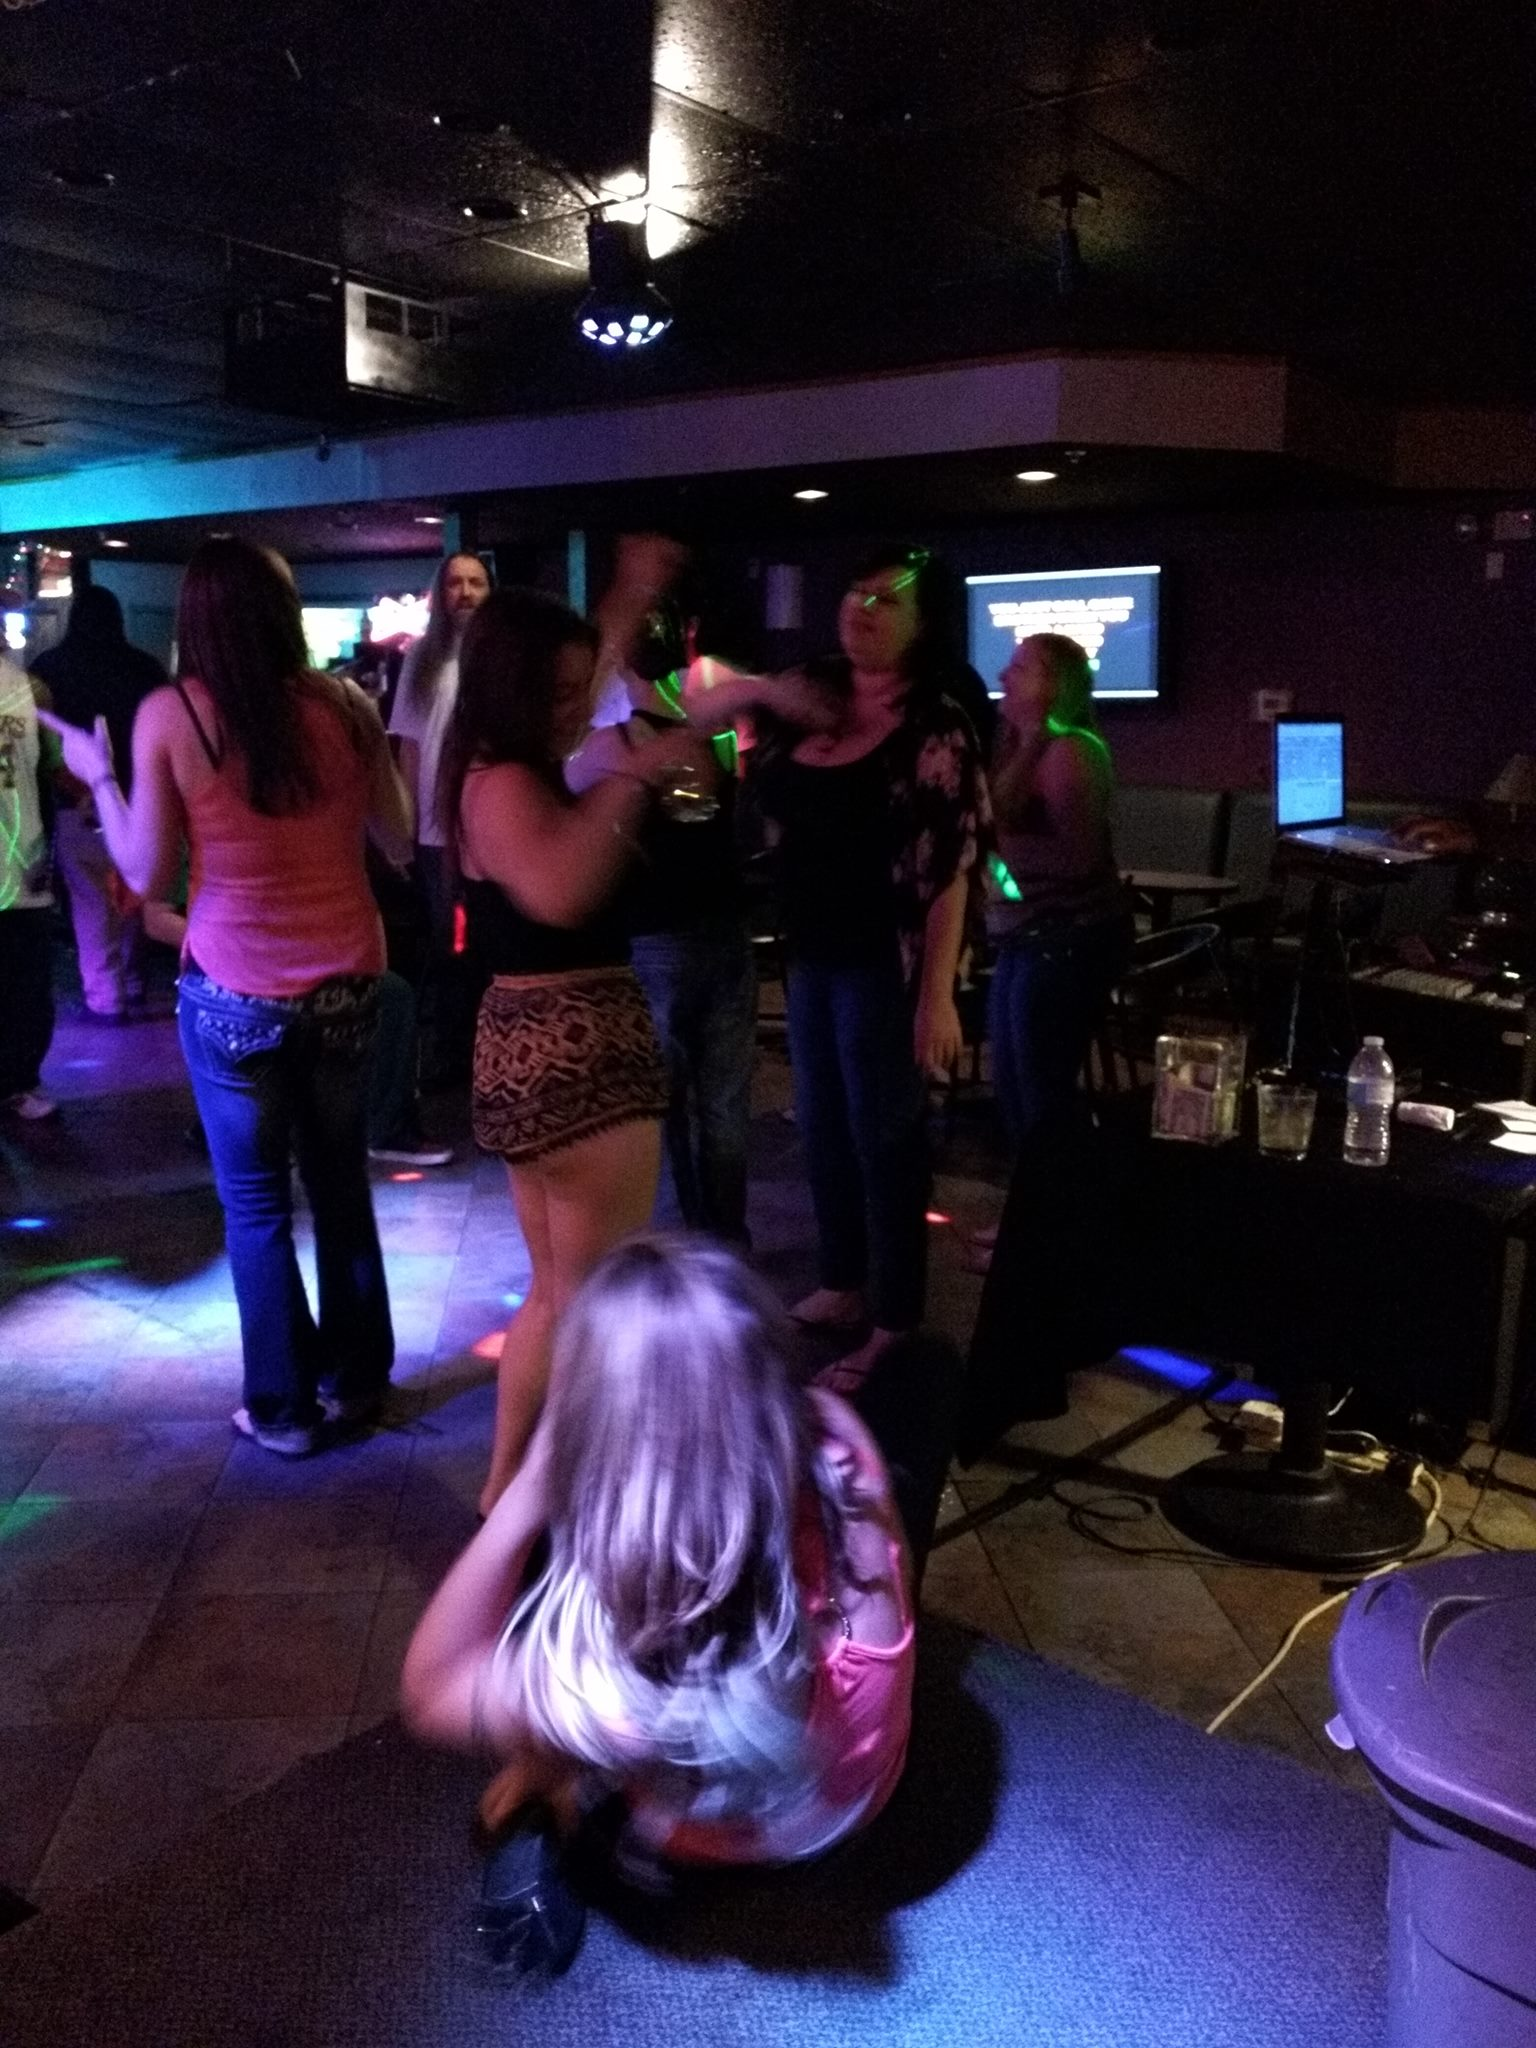 People are on the dance floor during a karaoke las vegas event at Pandoras Karaoke Bar